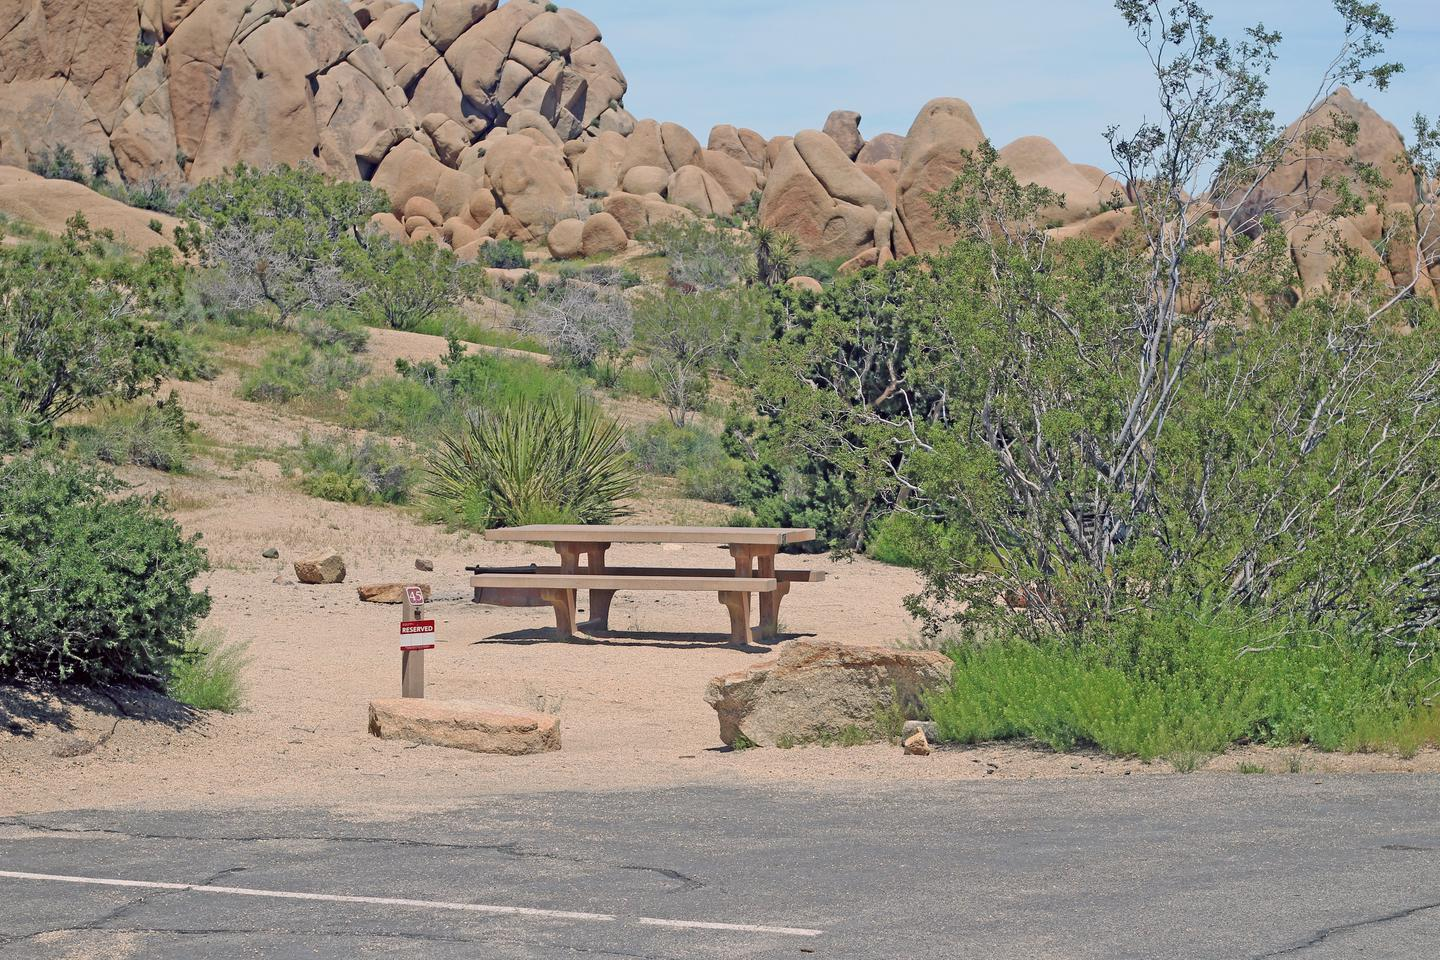 Shared parking for campsite. Picnic table surrounded by boulders and green plants.Shared parking and campsite.